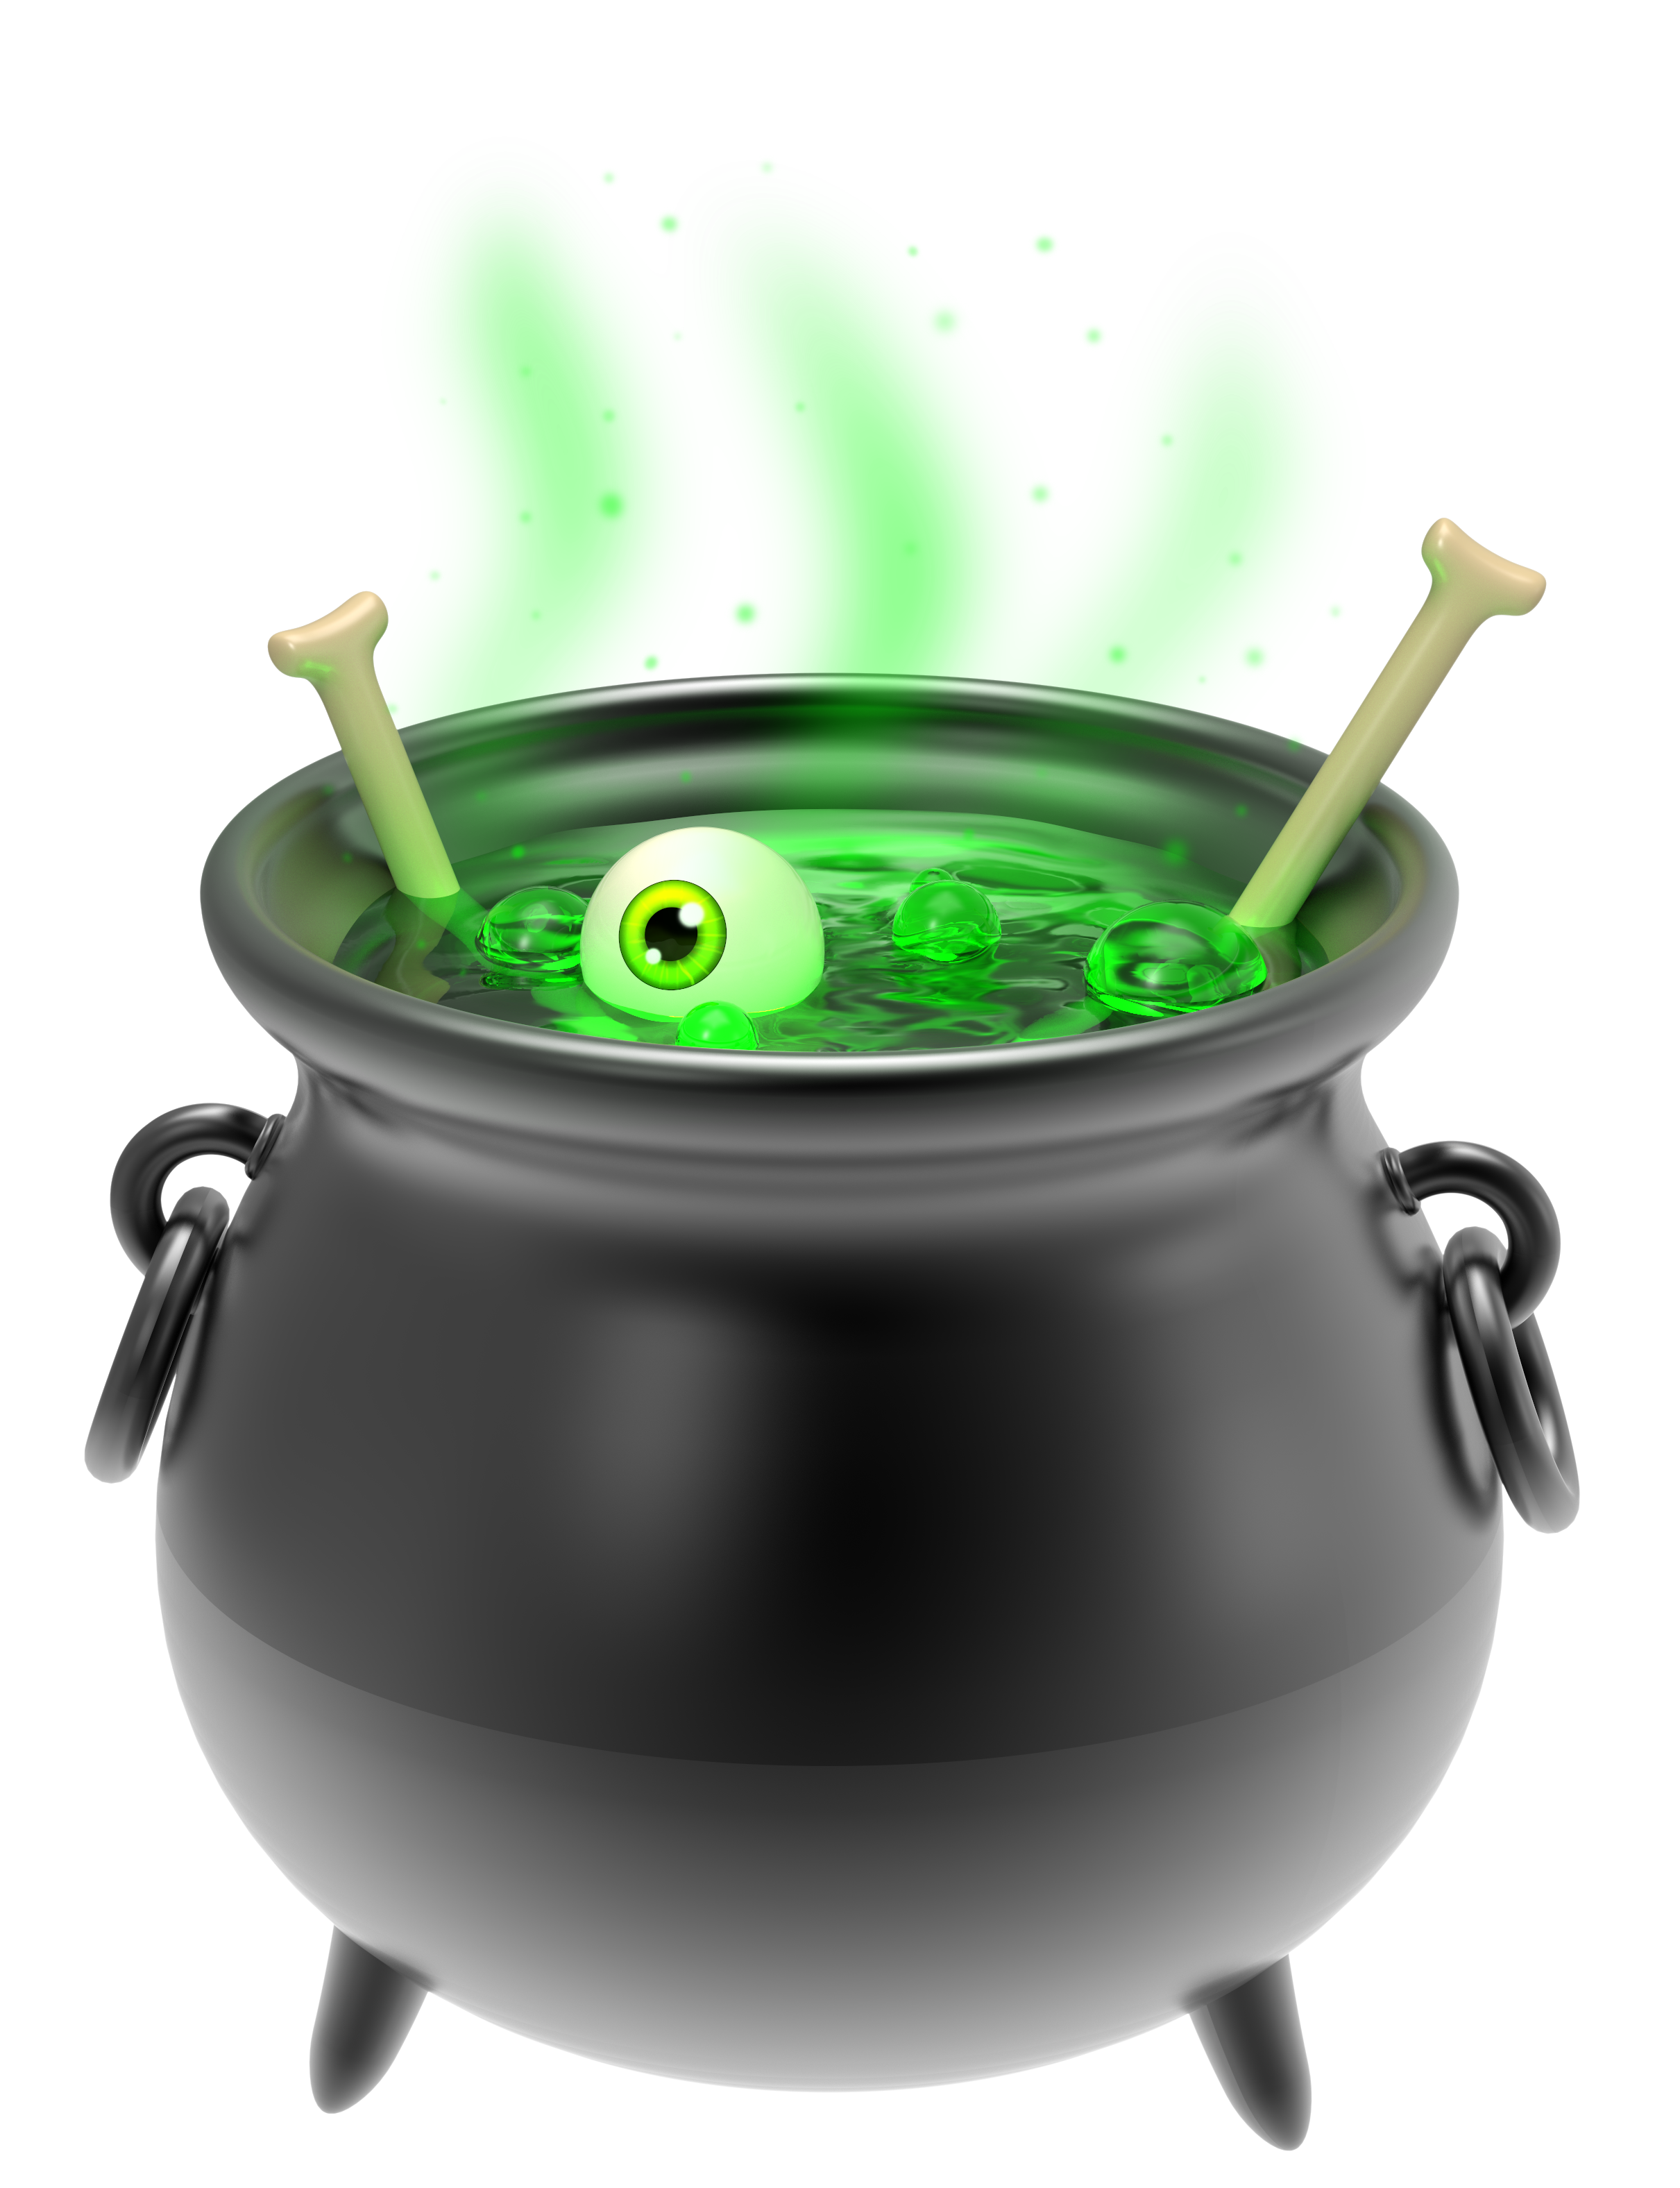 clip art freeuse library Witch black png image. Free clipart witches cauldron.